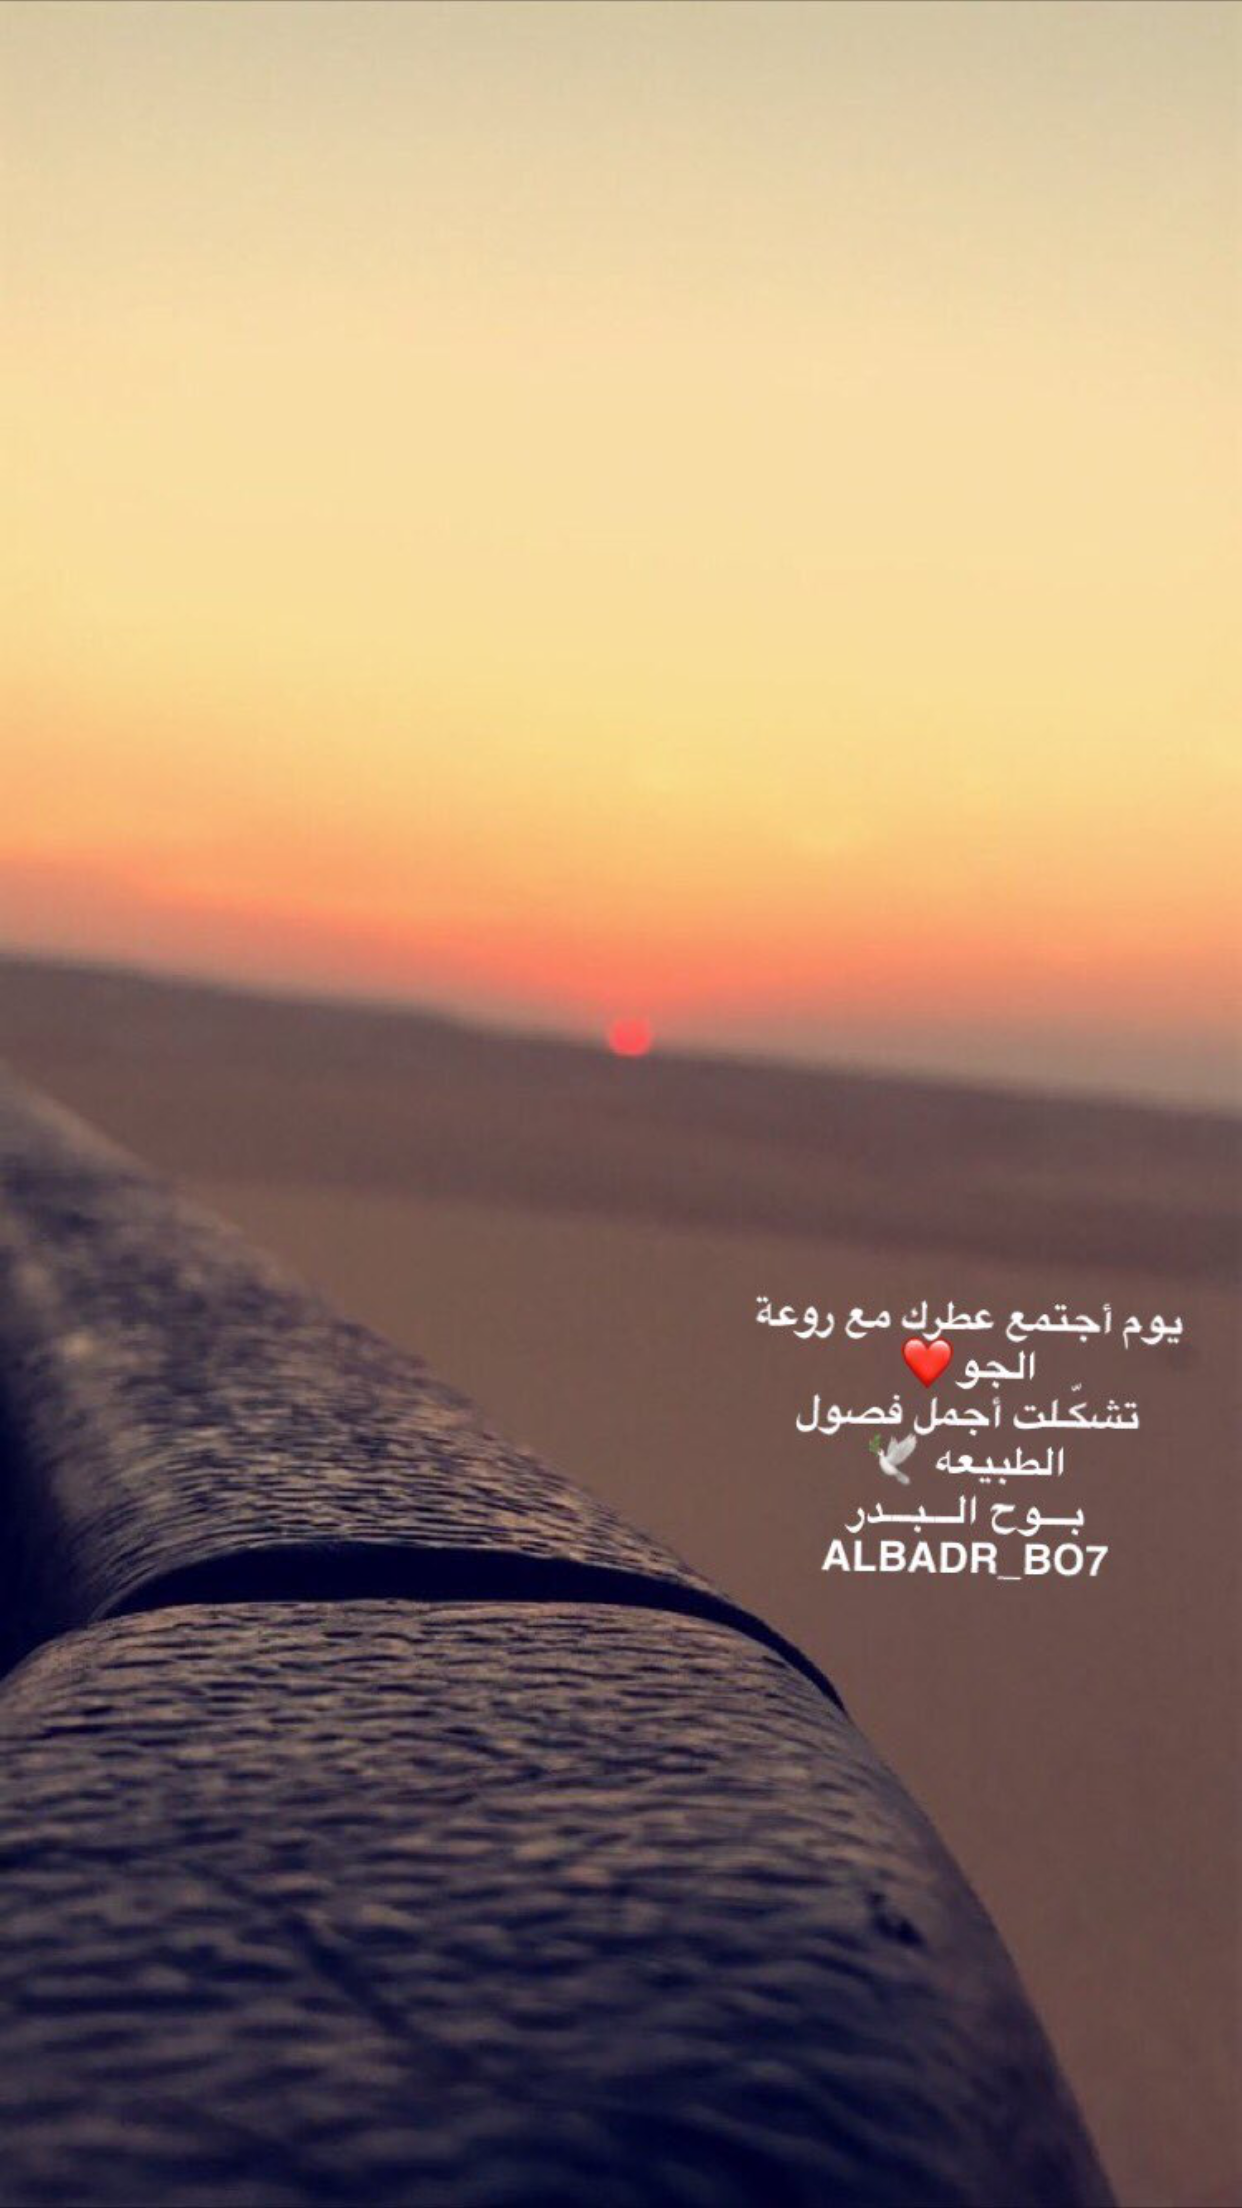 Pin By Hano Alraj7i On حكم وعبر Beautiful Quran Quotes Picture Quotes Spirit Quotes